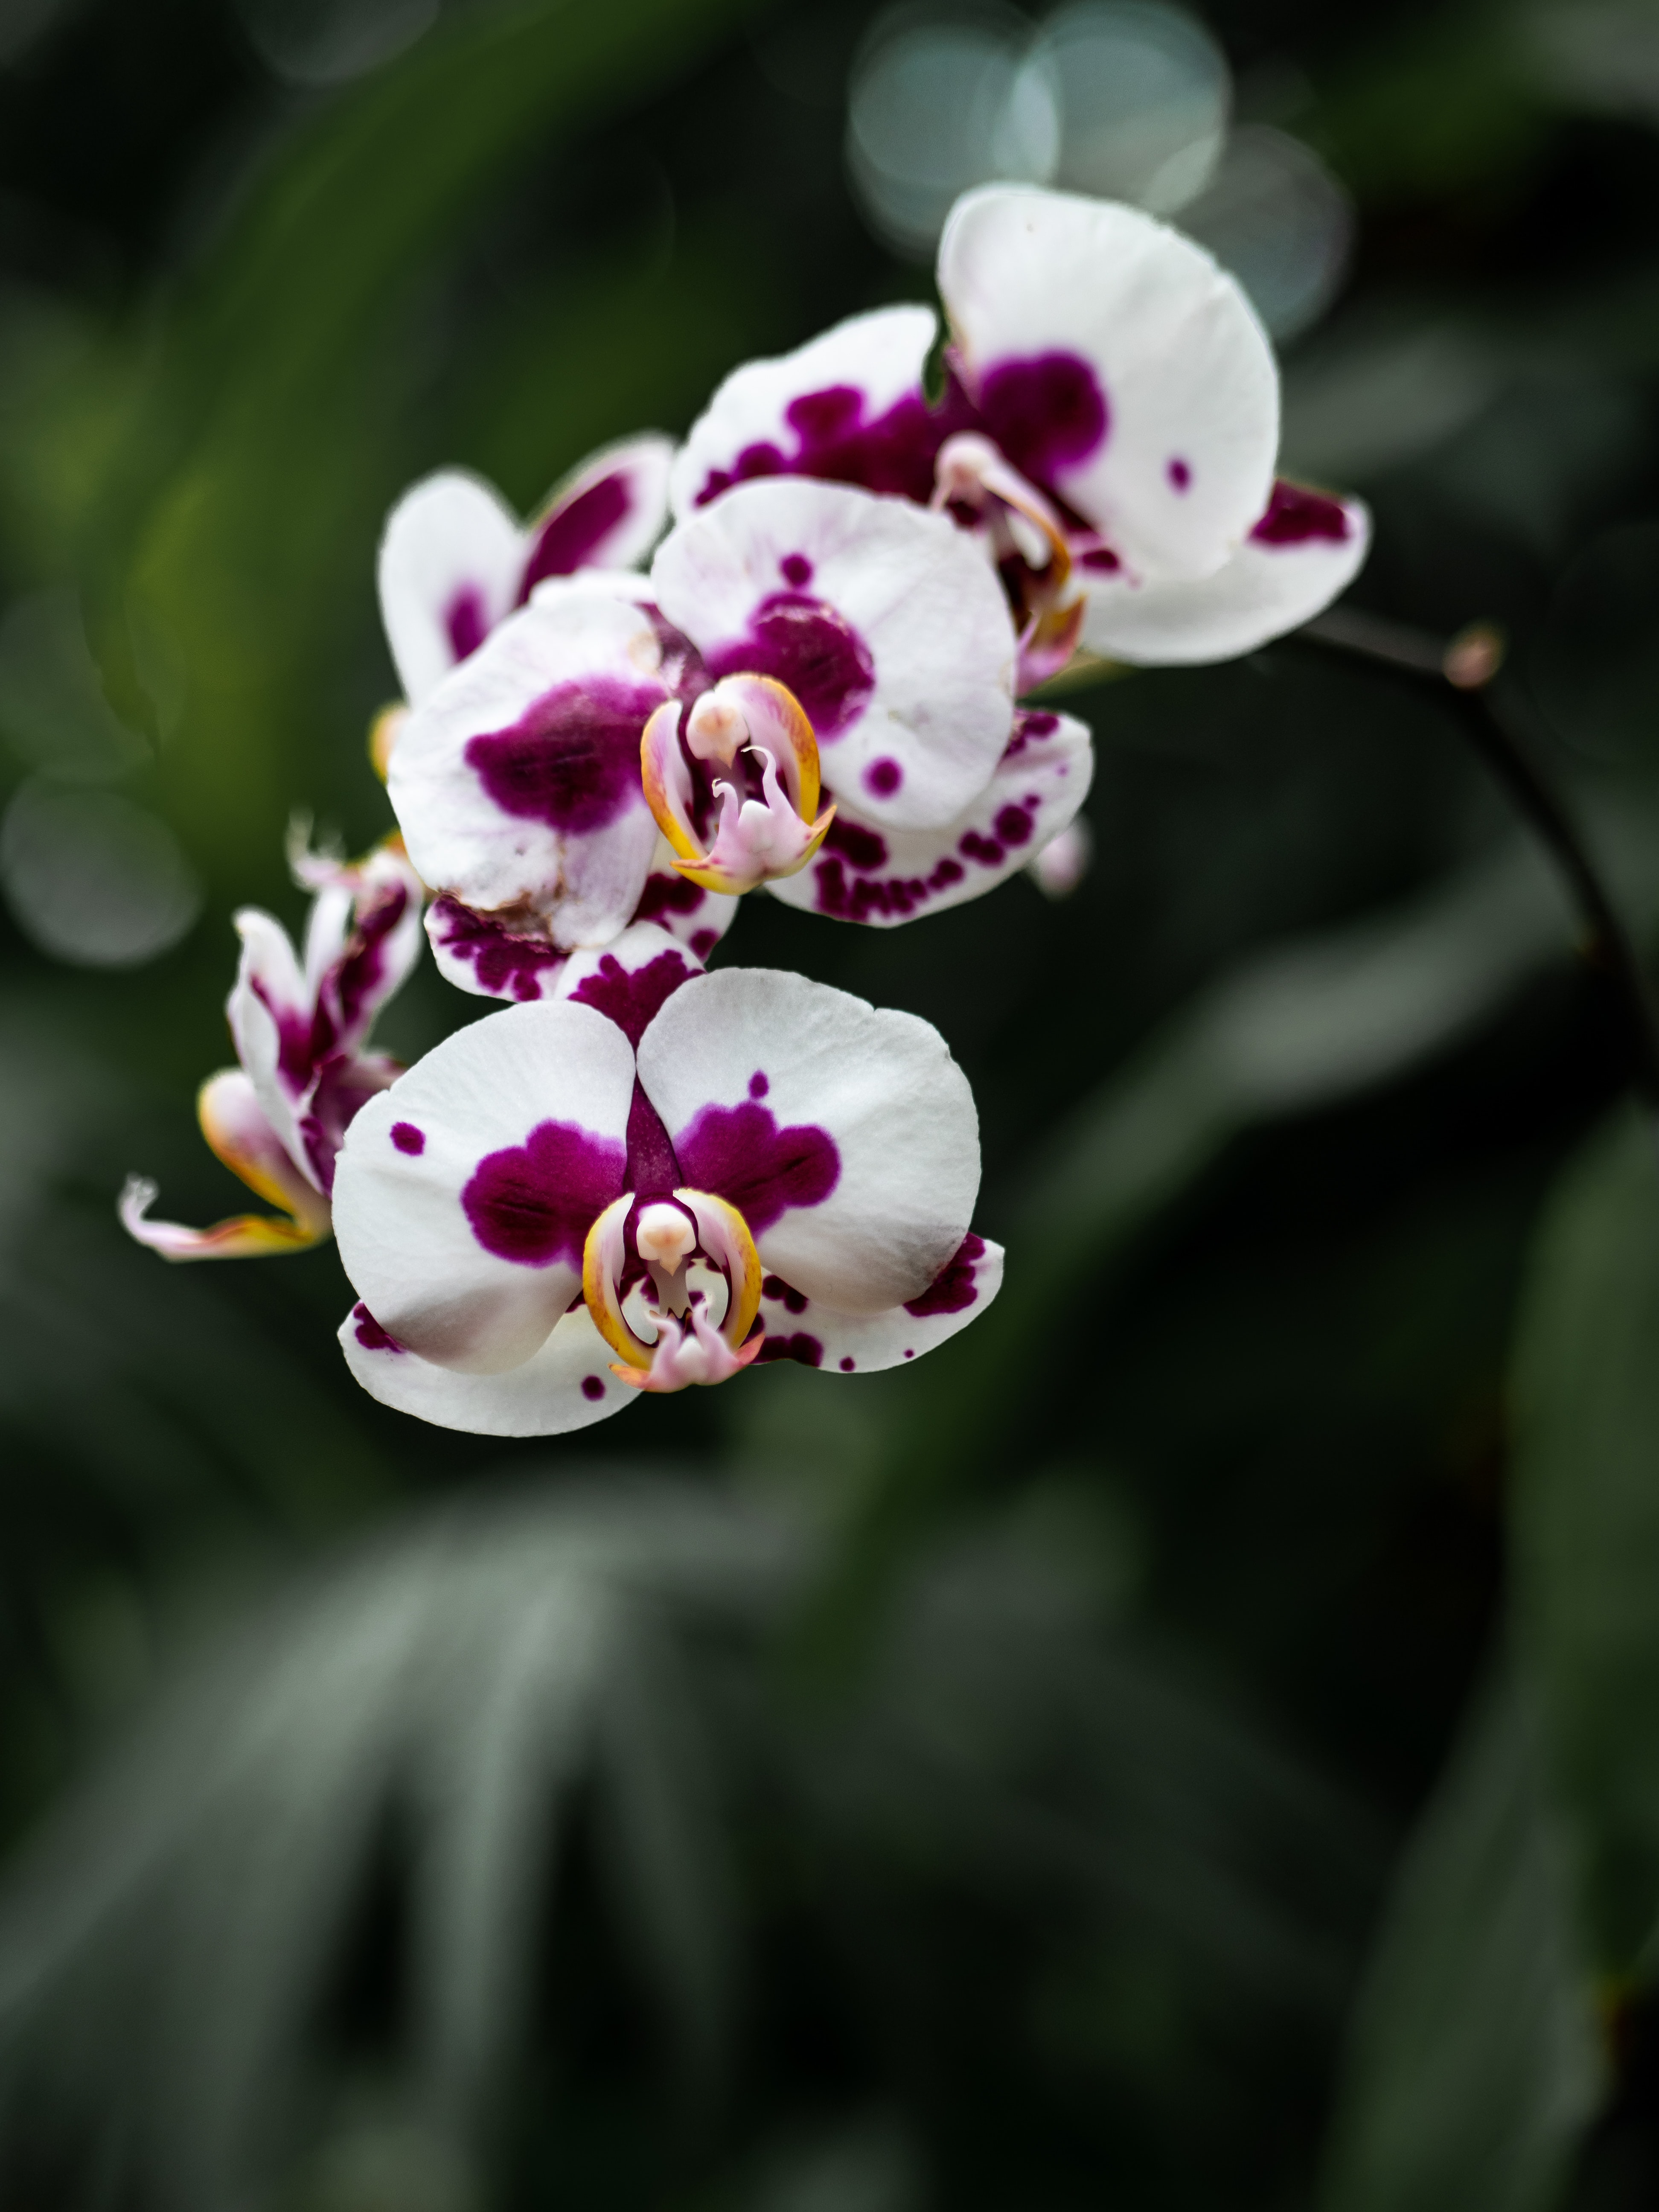 close-up photography of white and purple orchid flowers